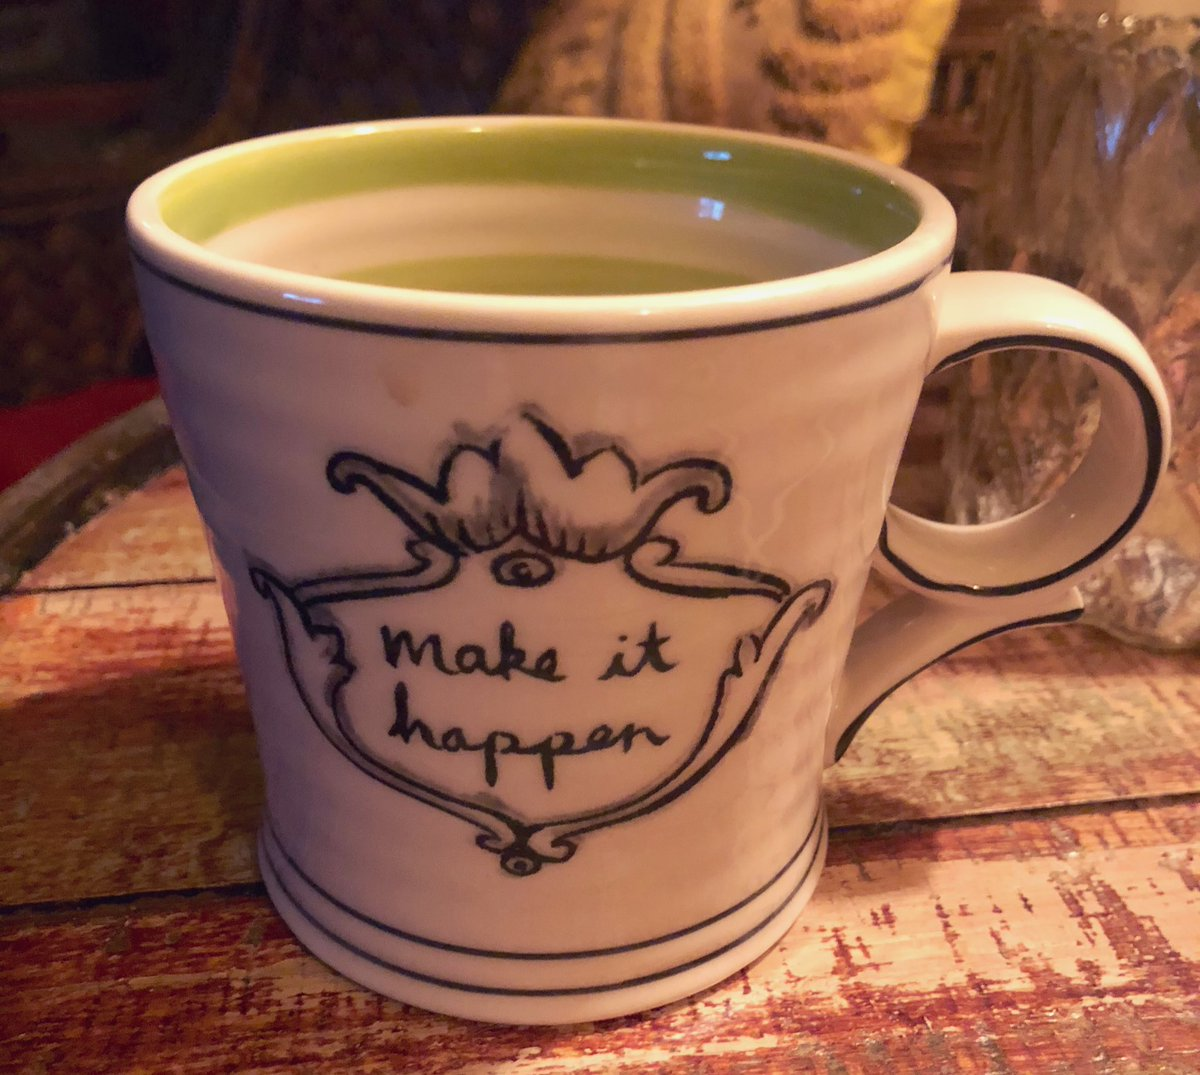 Rise & shine #brewcrew ☀️Let's make great things happen today.. but first #coffee ☕️💪 @Cbp8Cindy @cazij @DavidFoyn @_drazzari @joneill55 @jflorez @ja2cook @JackConnie @ccatmpt @pjervis @PoloOrtiz9 @drahus11 @simplysallyh @confessions_cup @SLBriscoe #tuesdayvibe